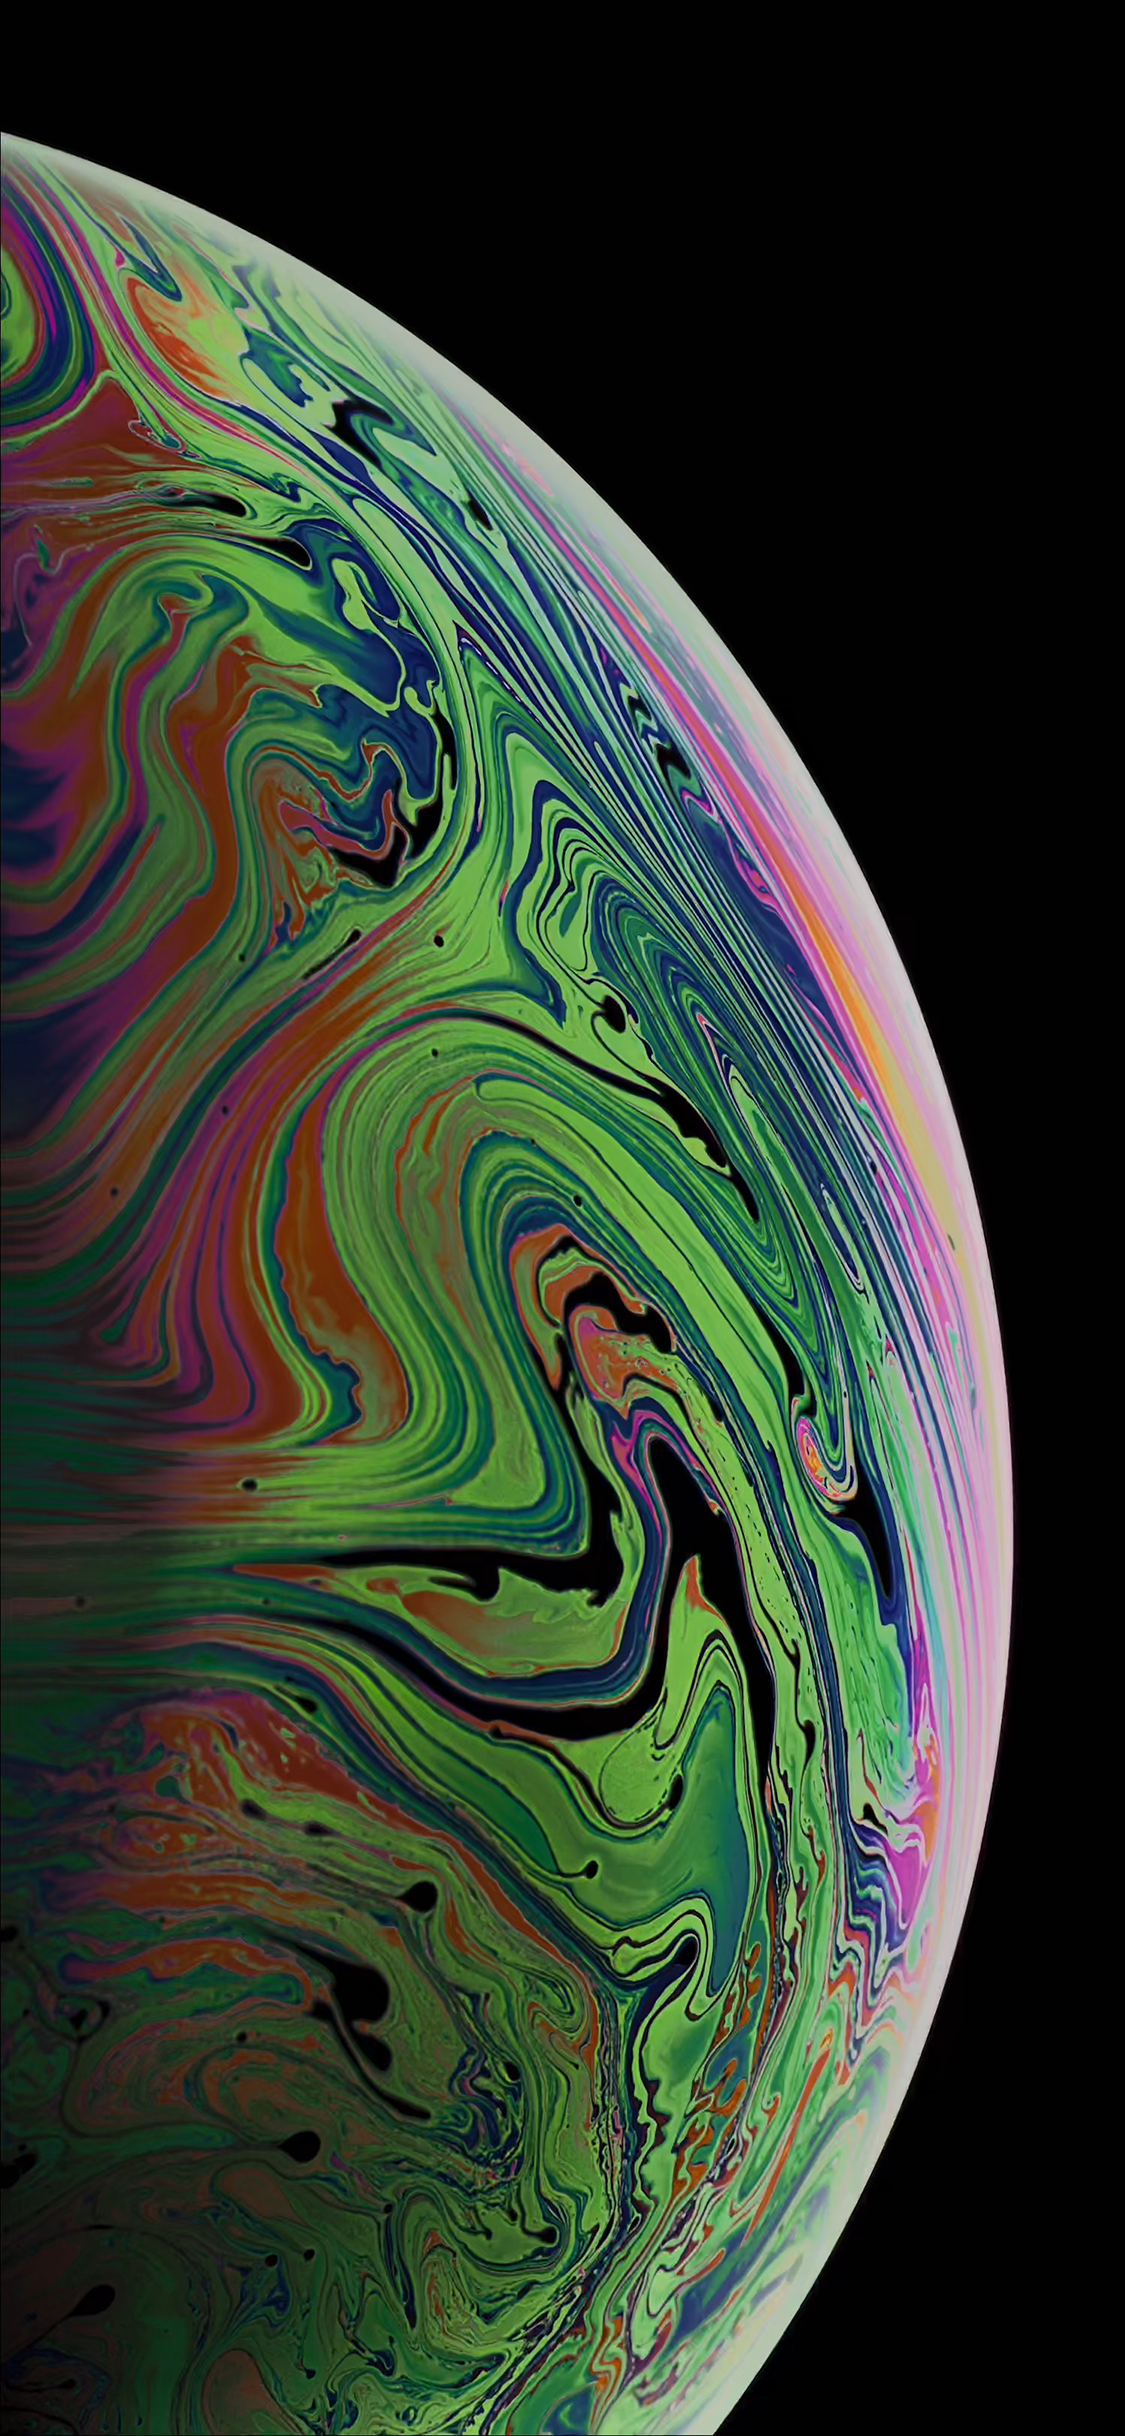 Download IPhone XS XR Wallpapers In Full Resolution AppleDigger